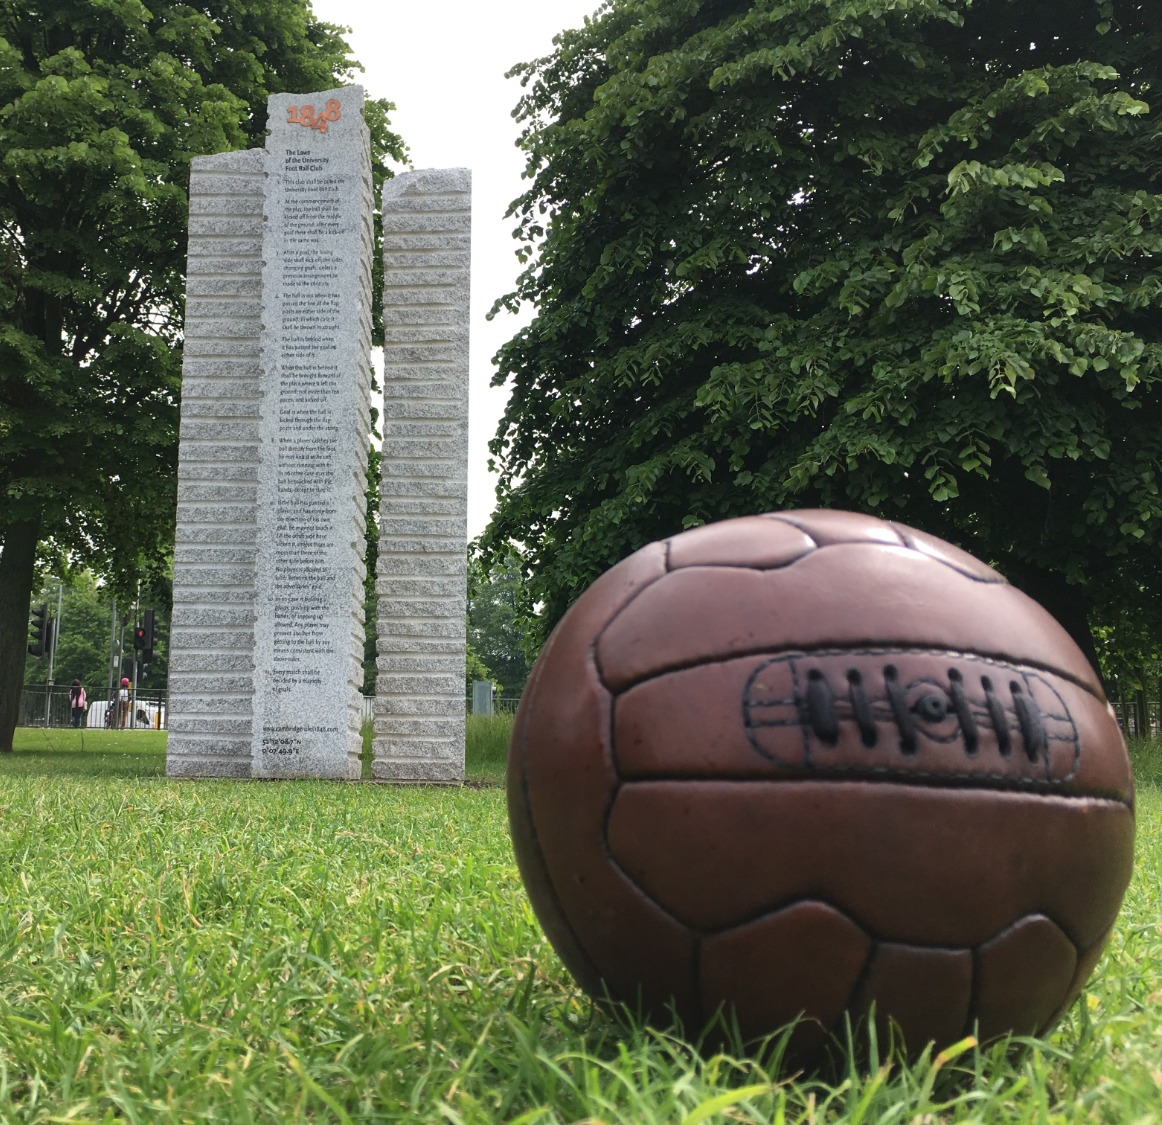 Football + sculpture May 2018_edited